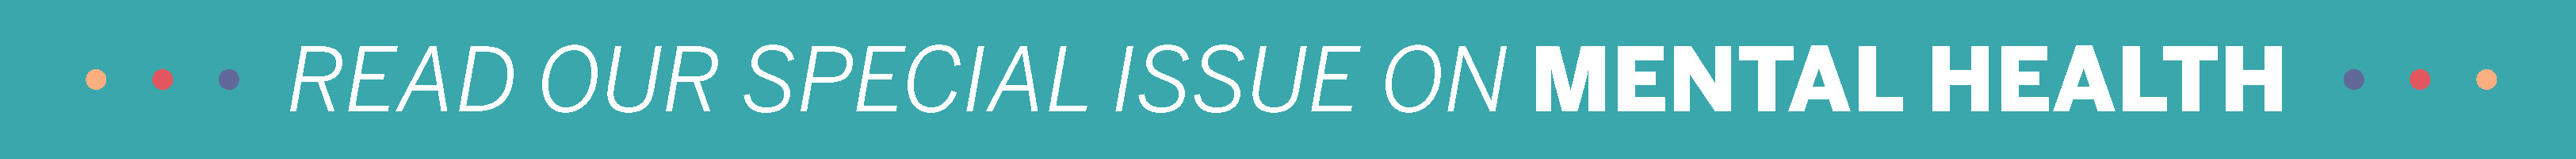 Read our special issue on mental health